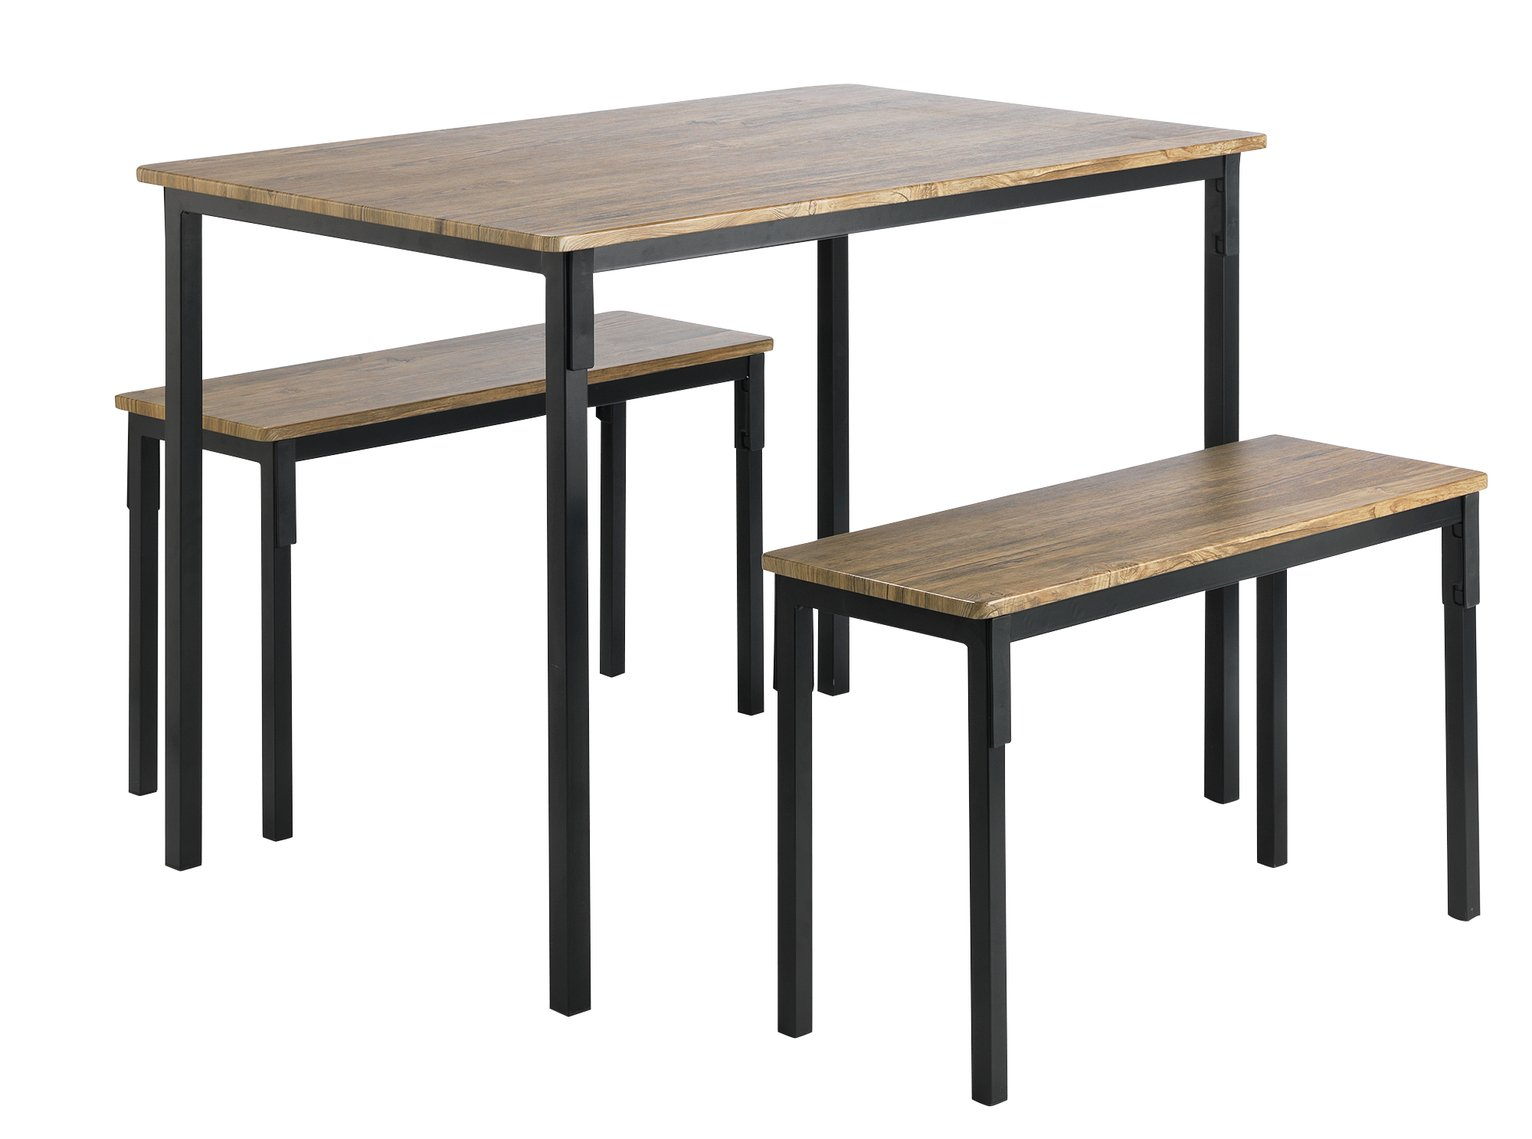 Argos Home Bolitzo Oak Effect Dining Table & 2 Benches